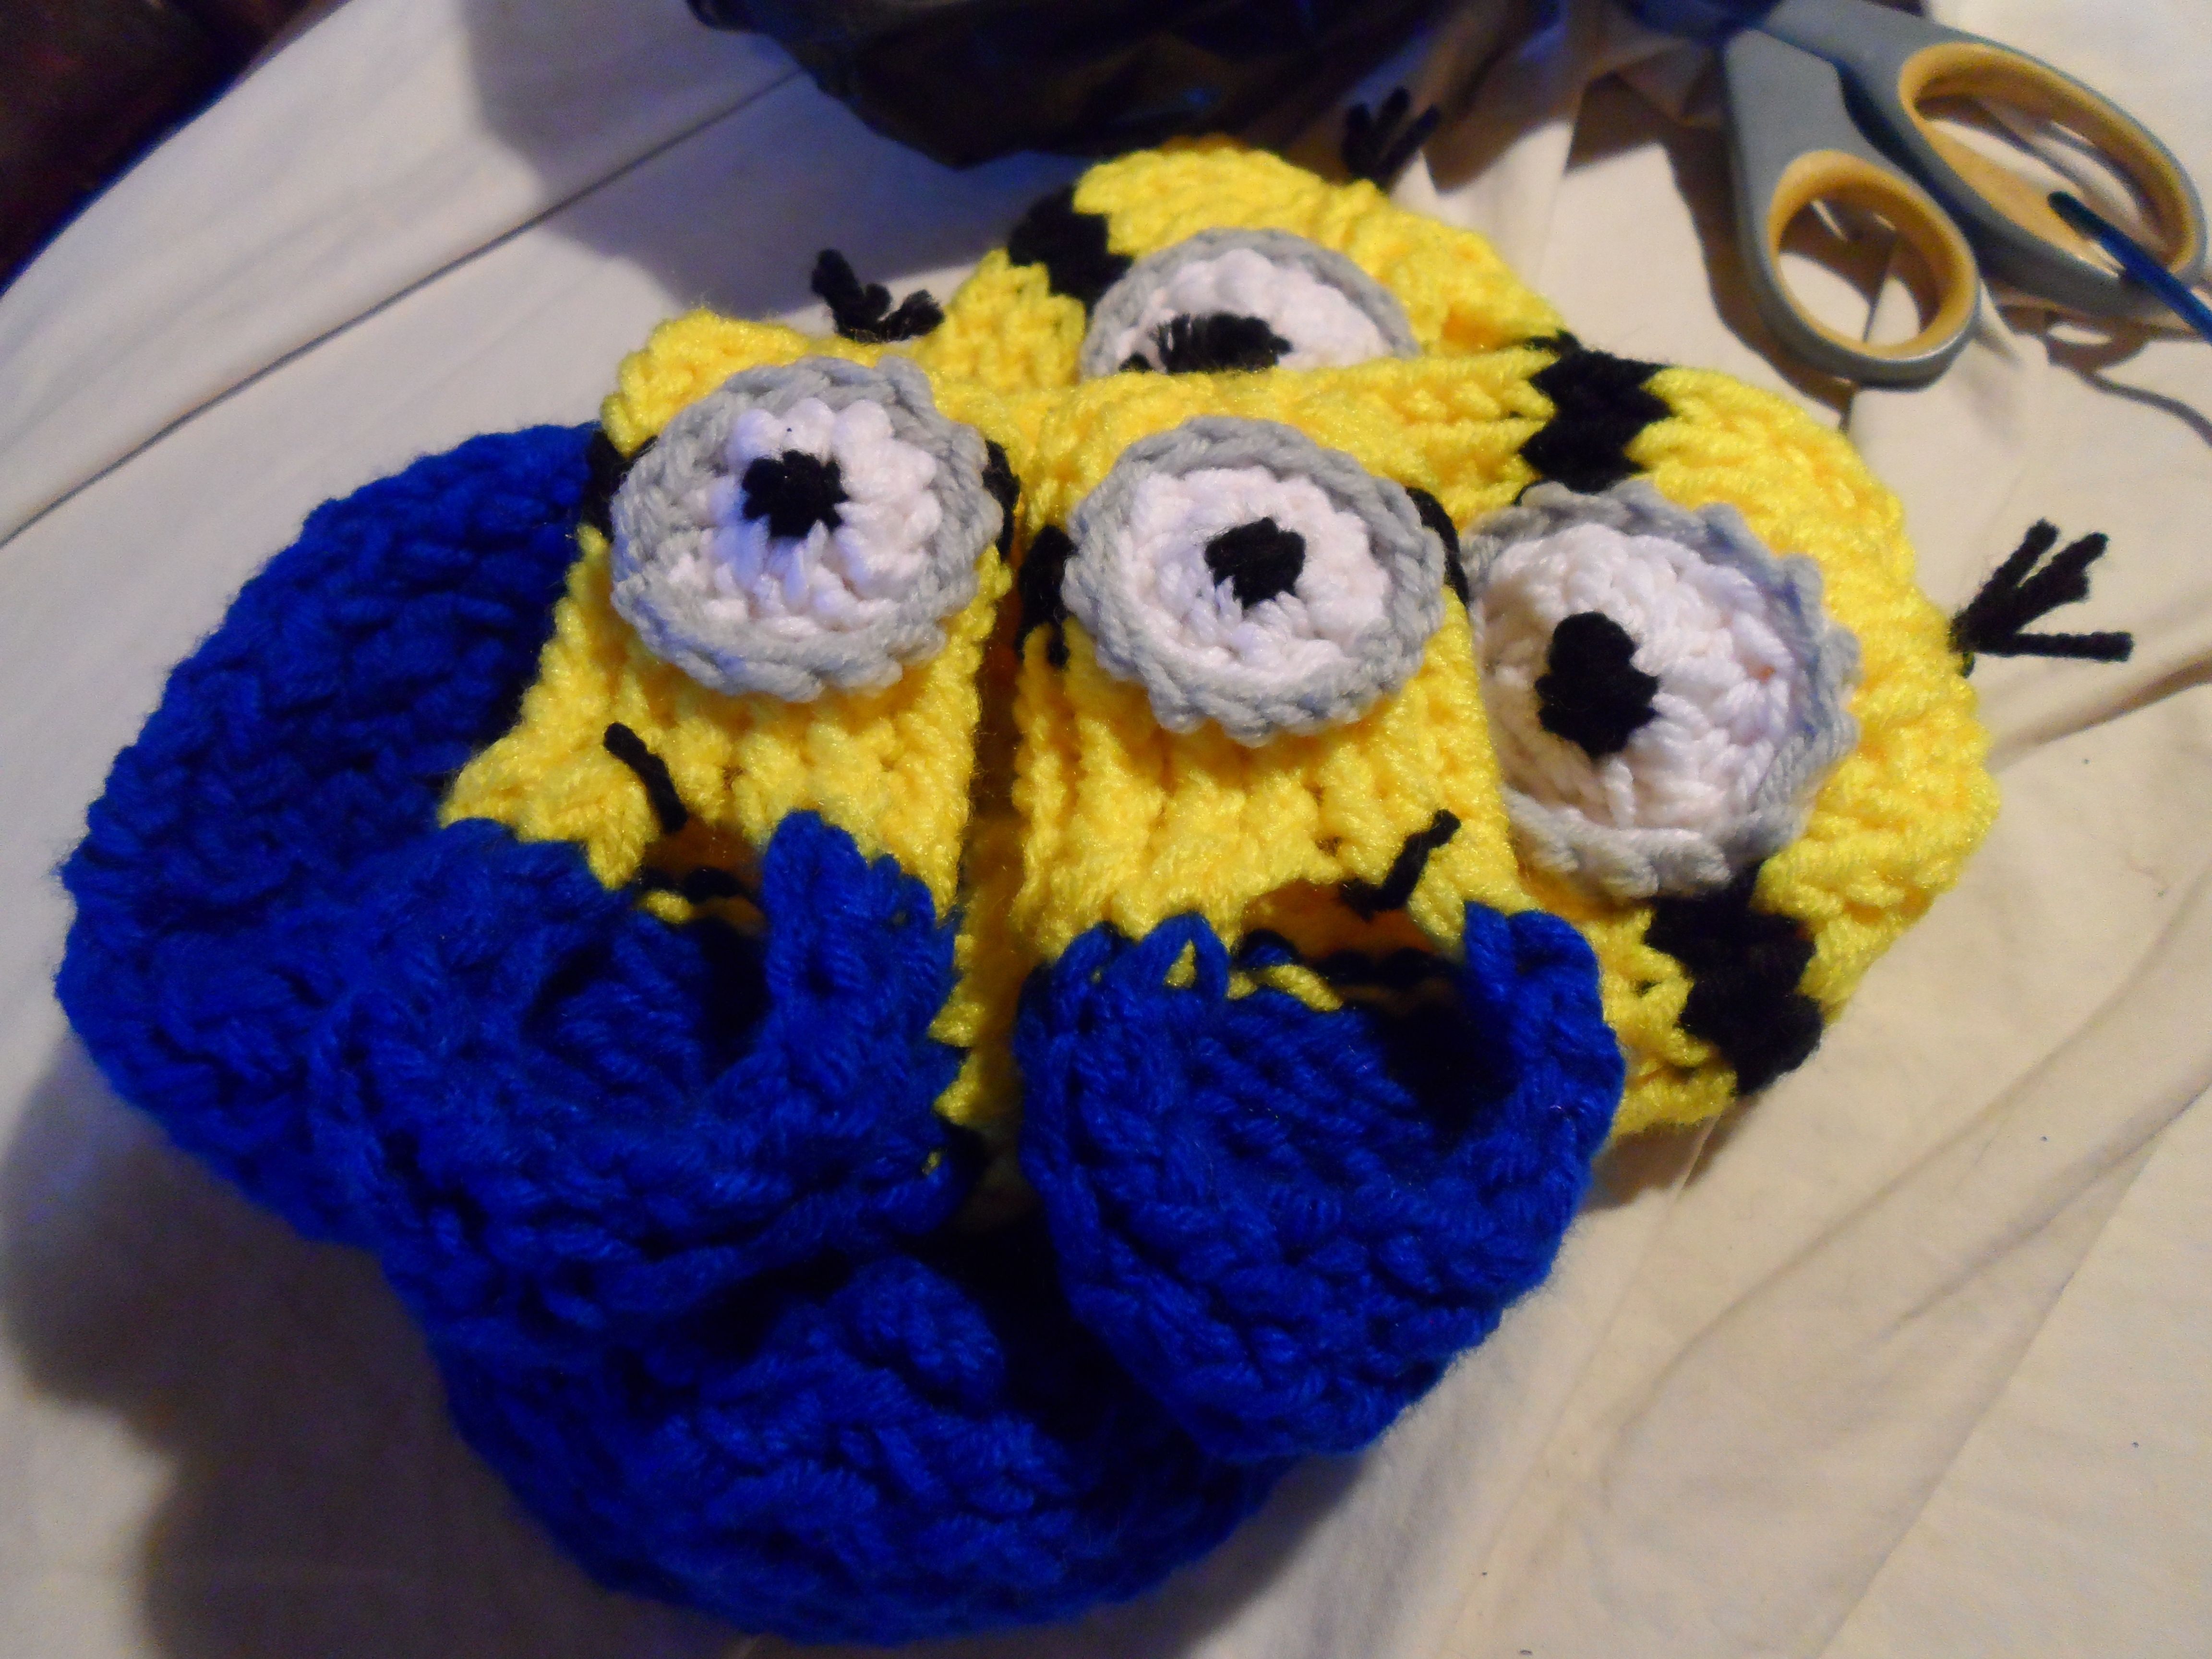 Knitted Minion Slippers Choice Image - handicraft ideas home decorating